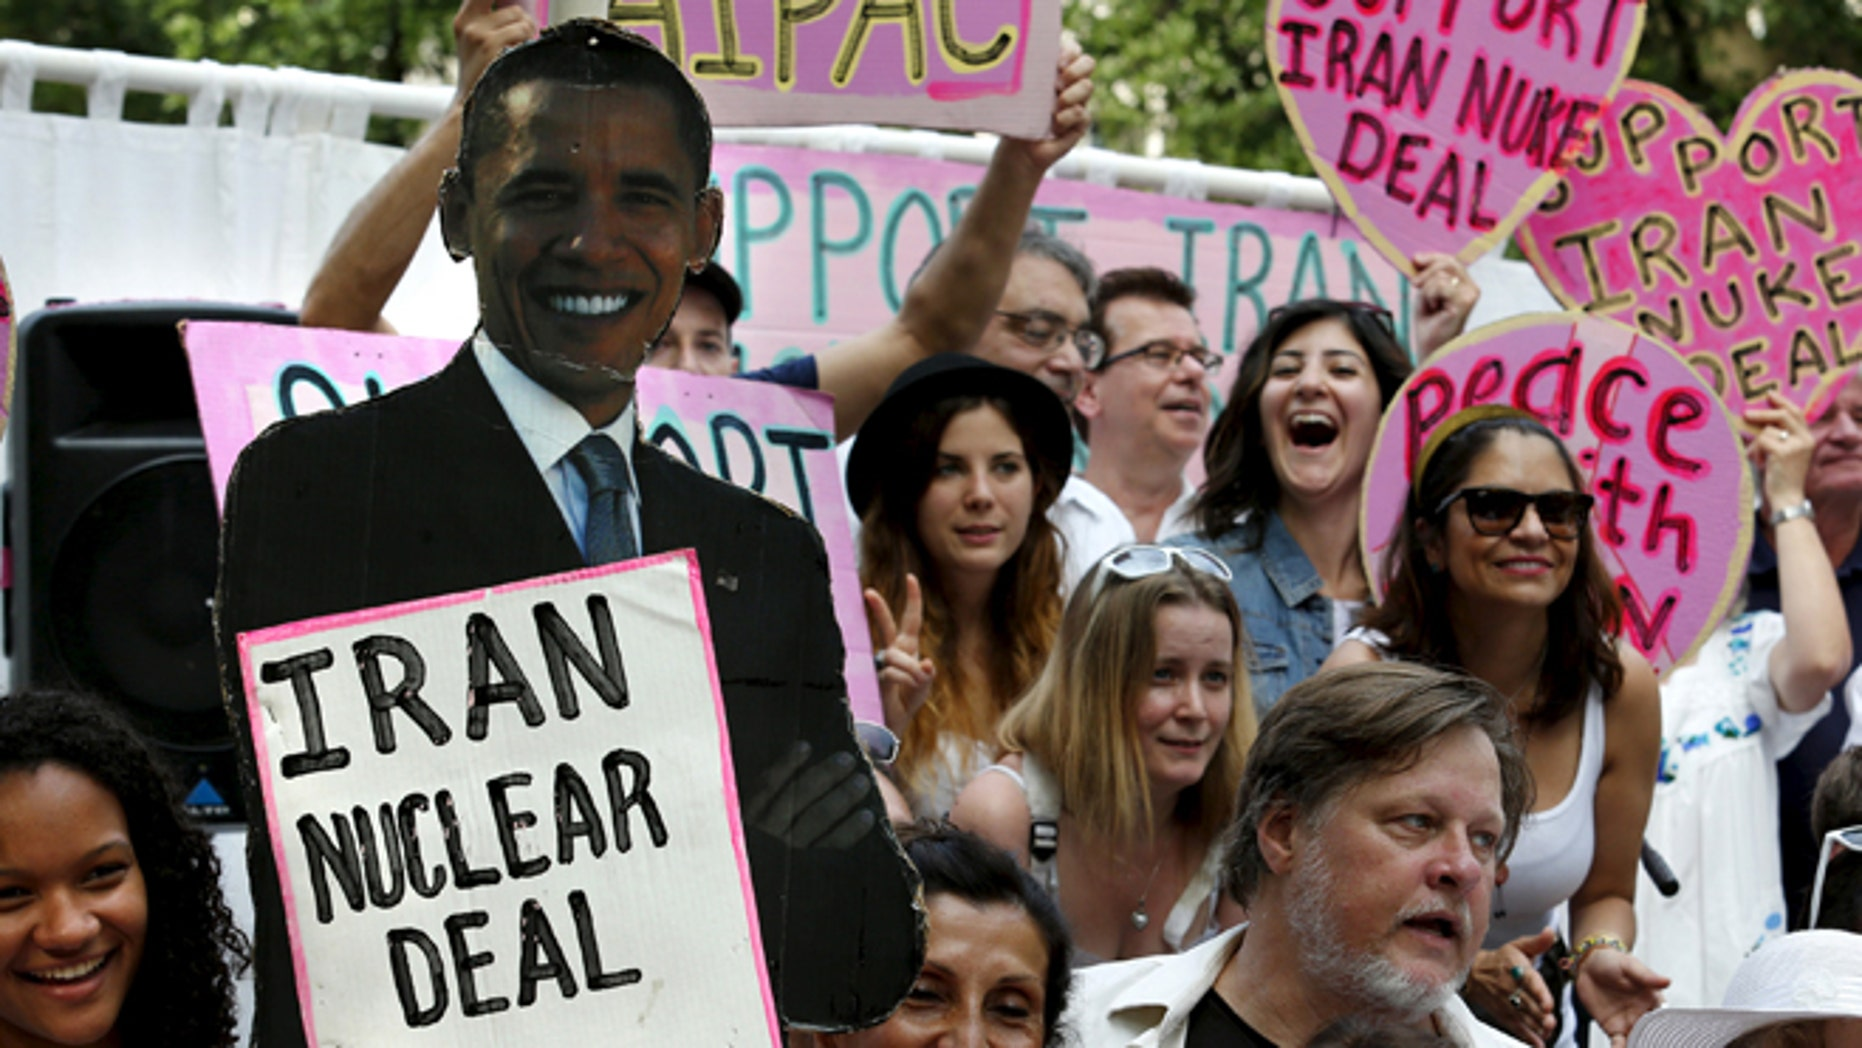 FILE: August 30, 2015: Activists rally outside the White House in Washington, D.C., in support of the Iran nuclear deal .